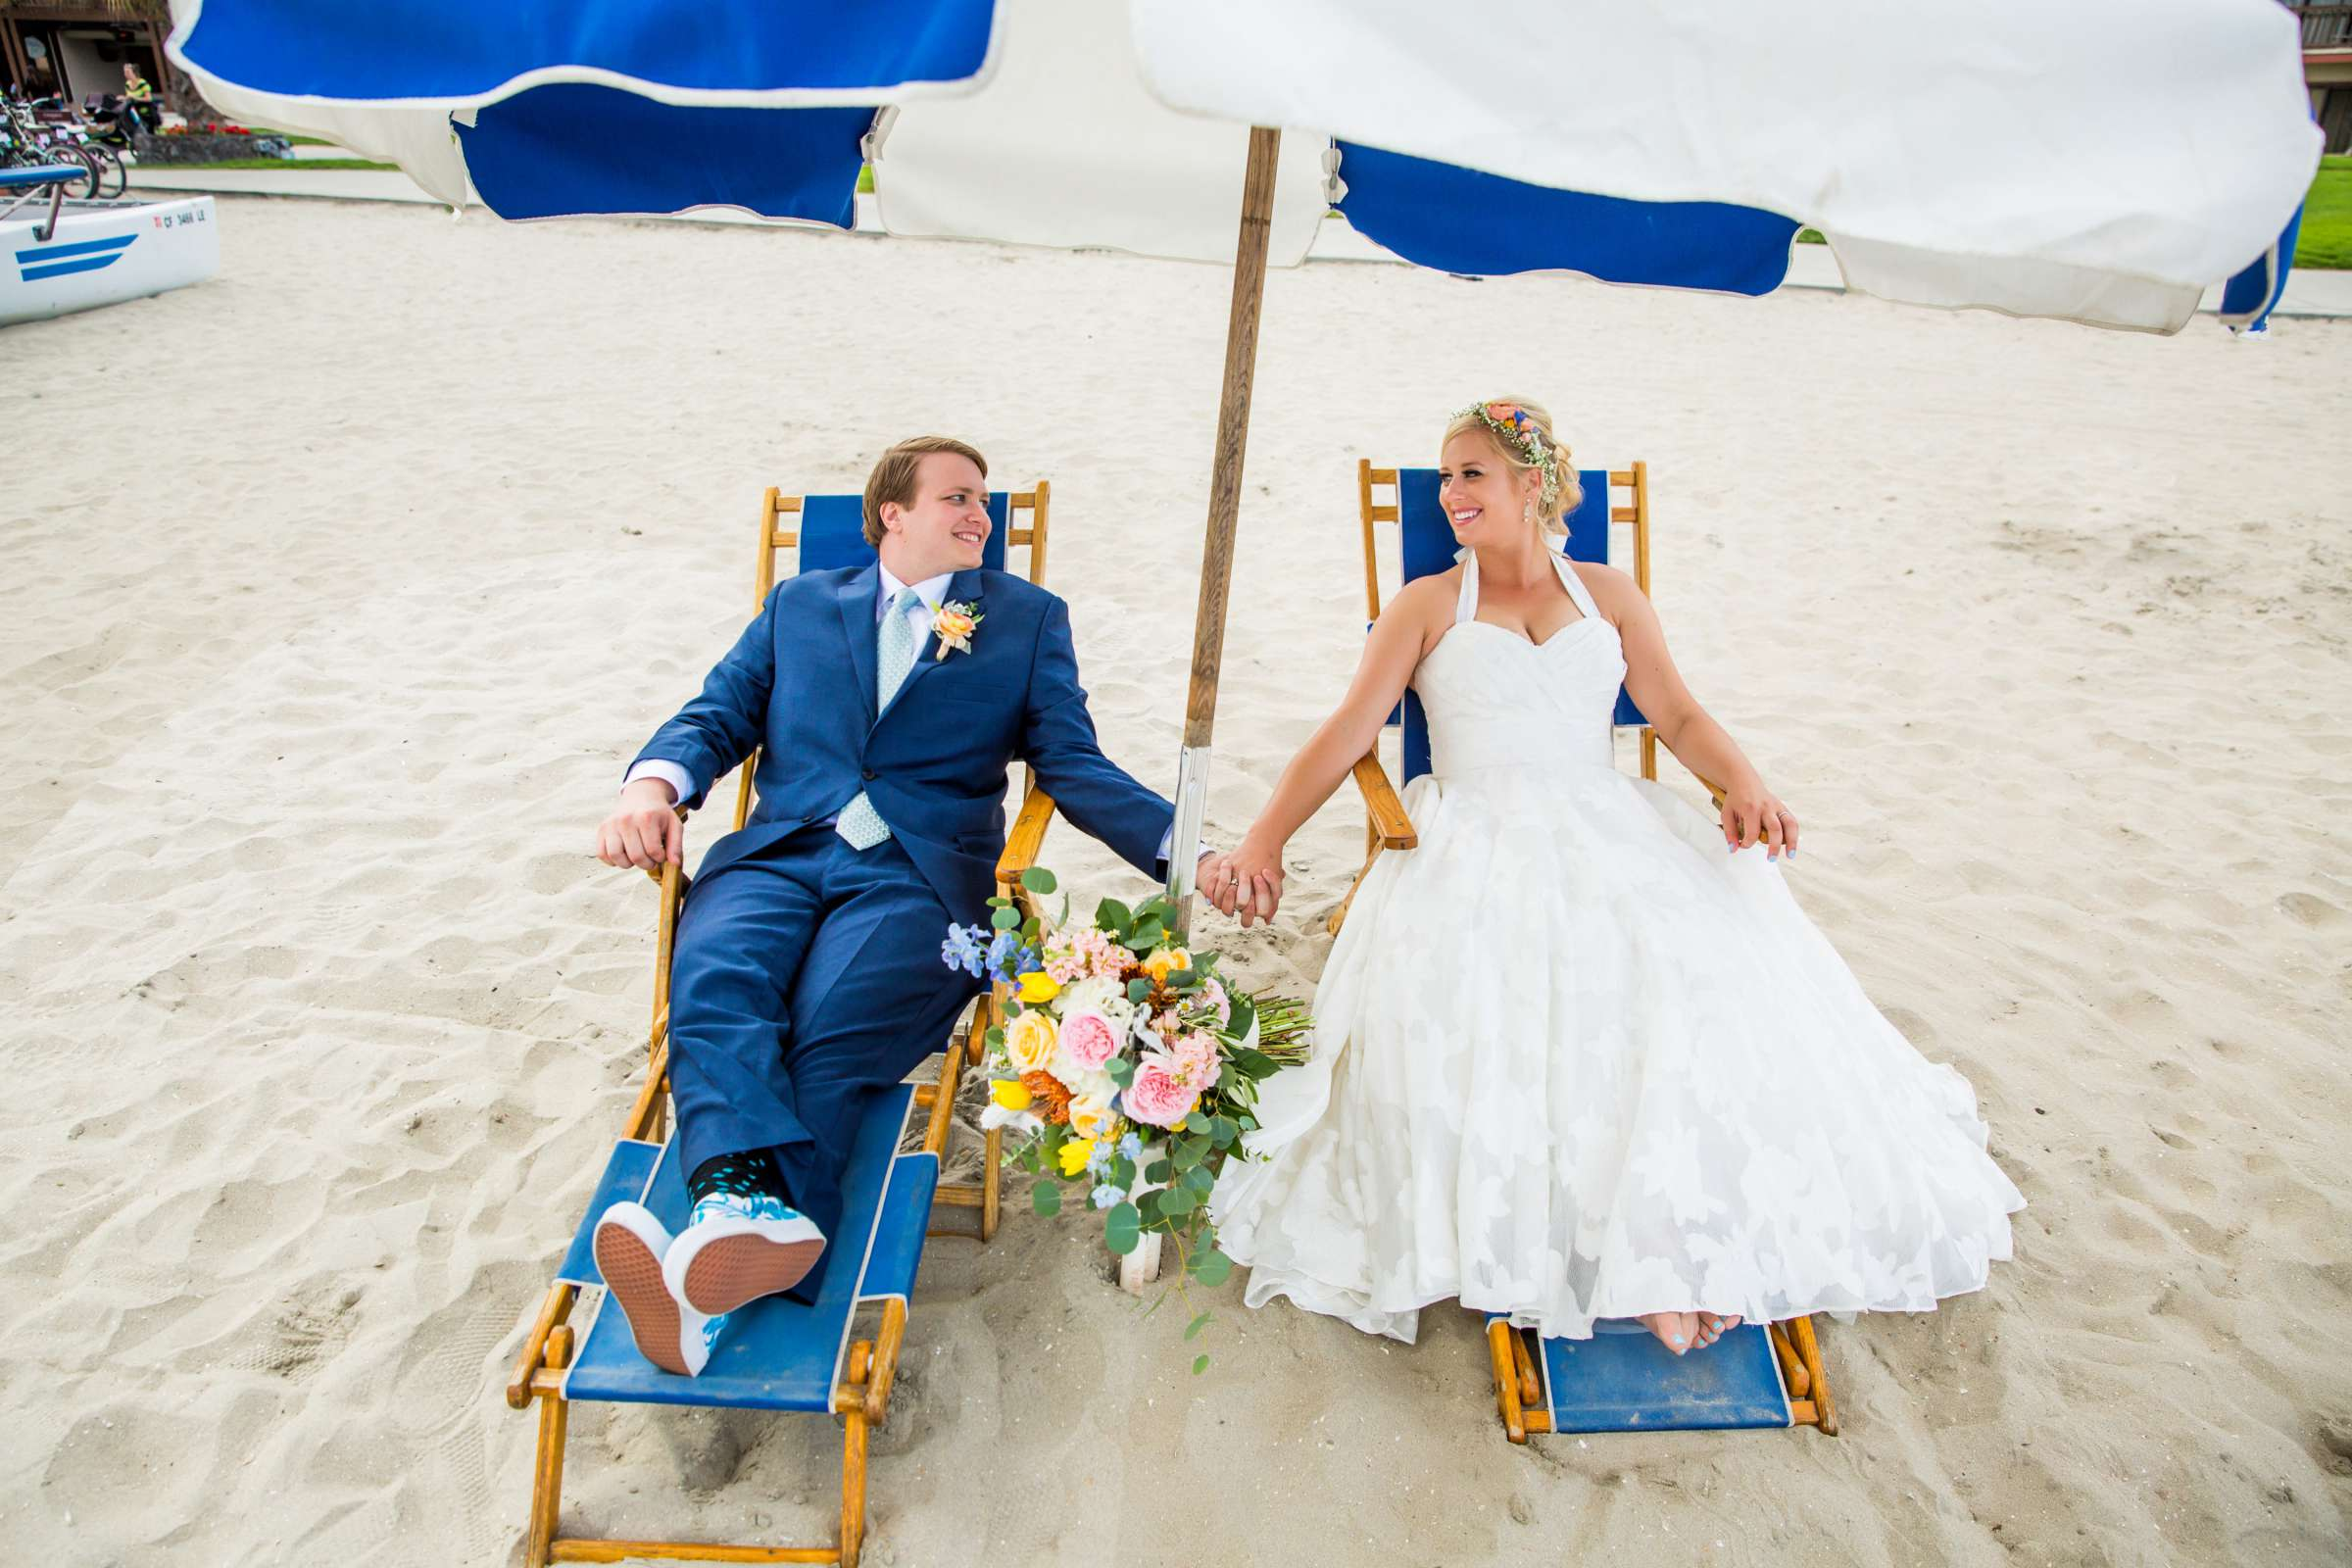 Catamaran Resort Wedding coordinated by Lavish Weddings, Brittany and David Wedding Photo #1 by True Photography